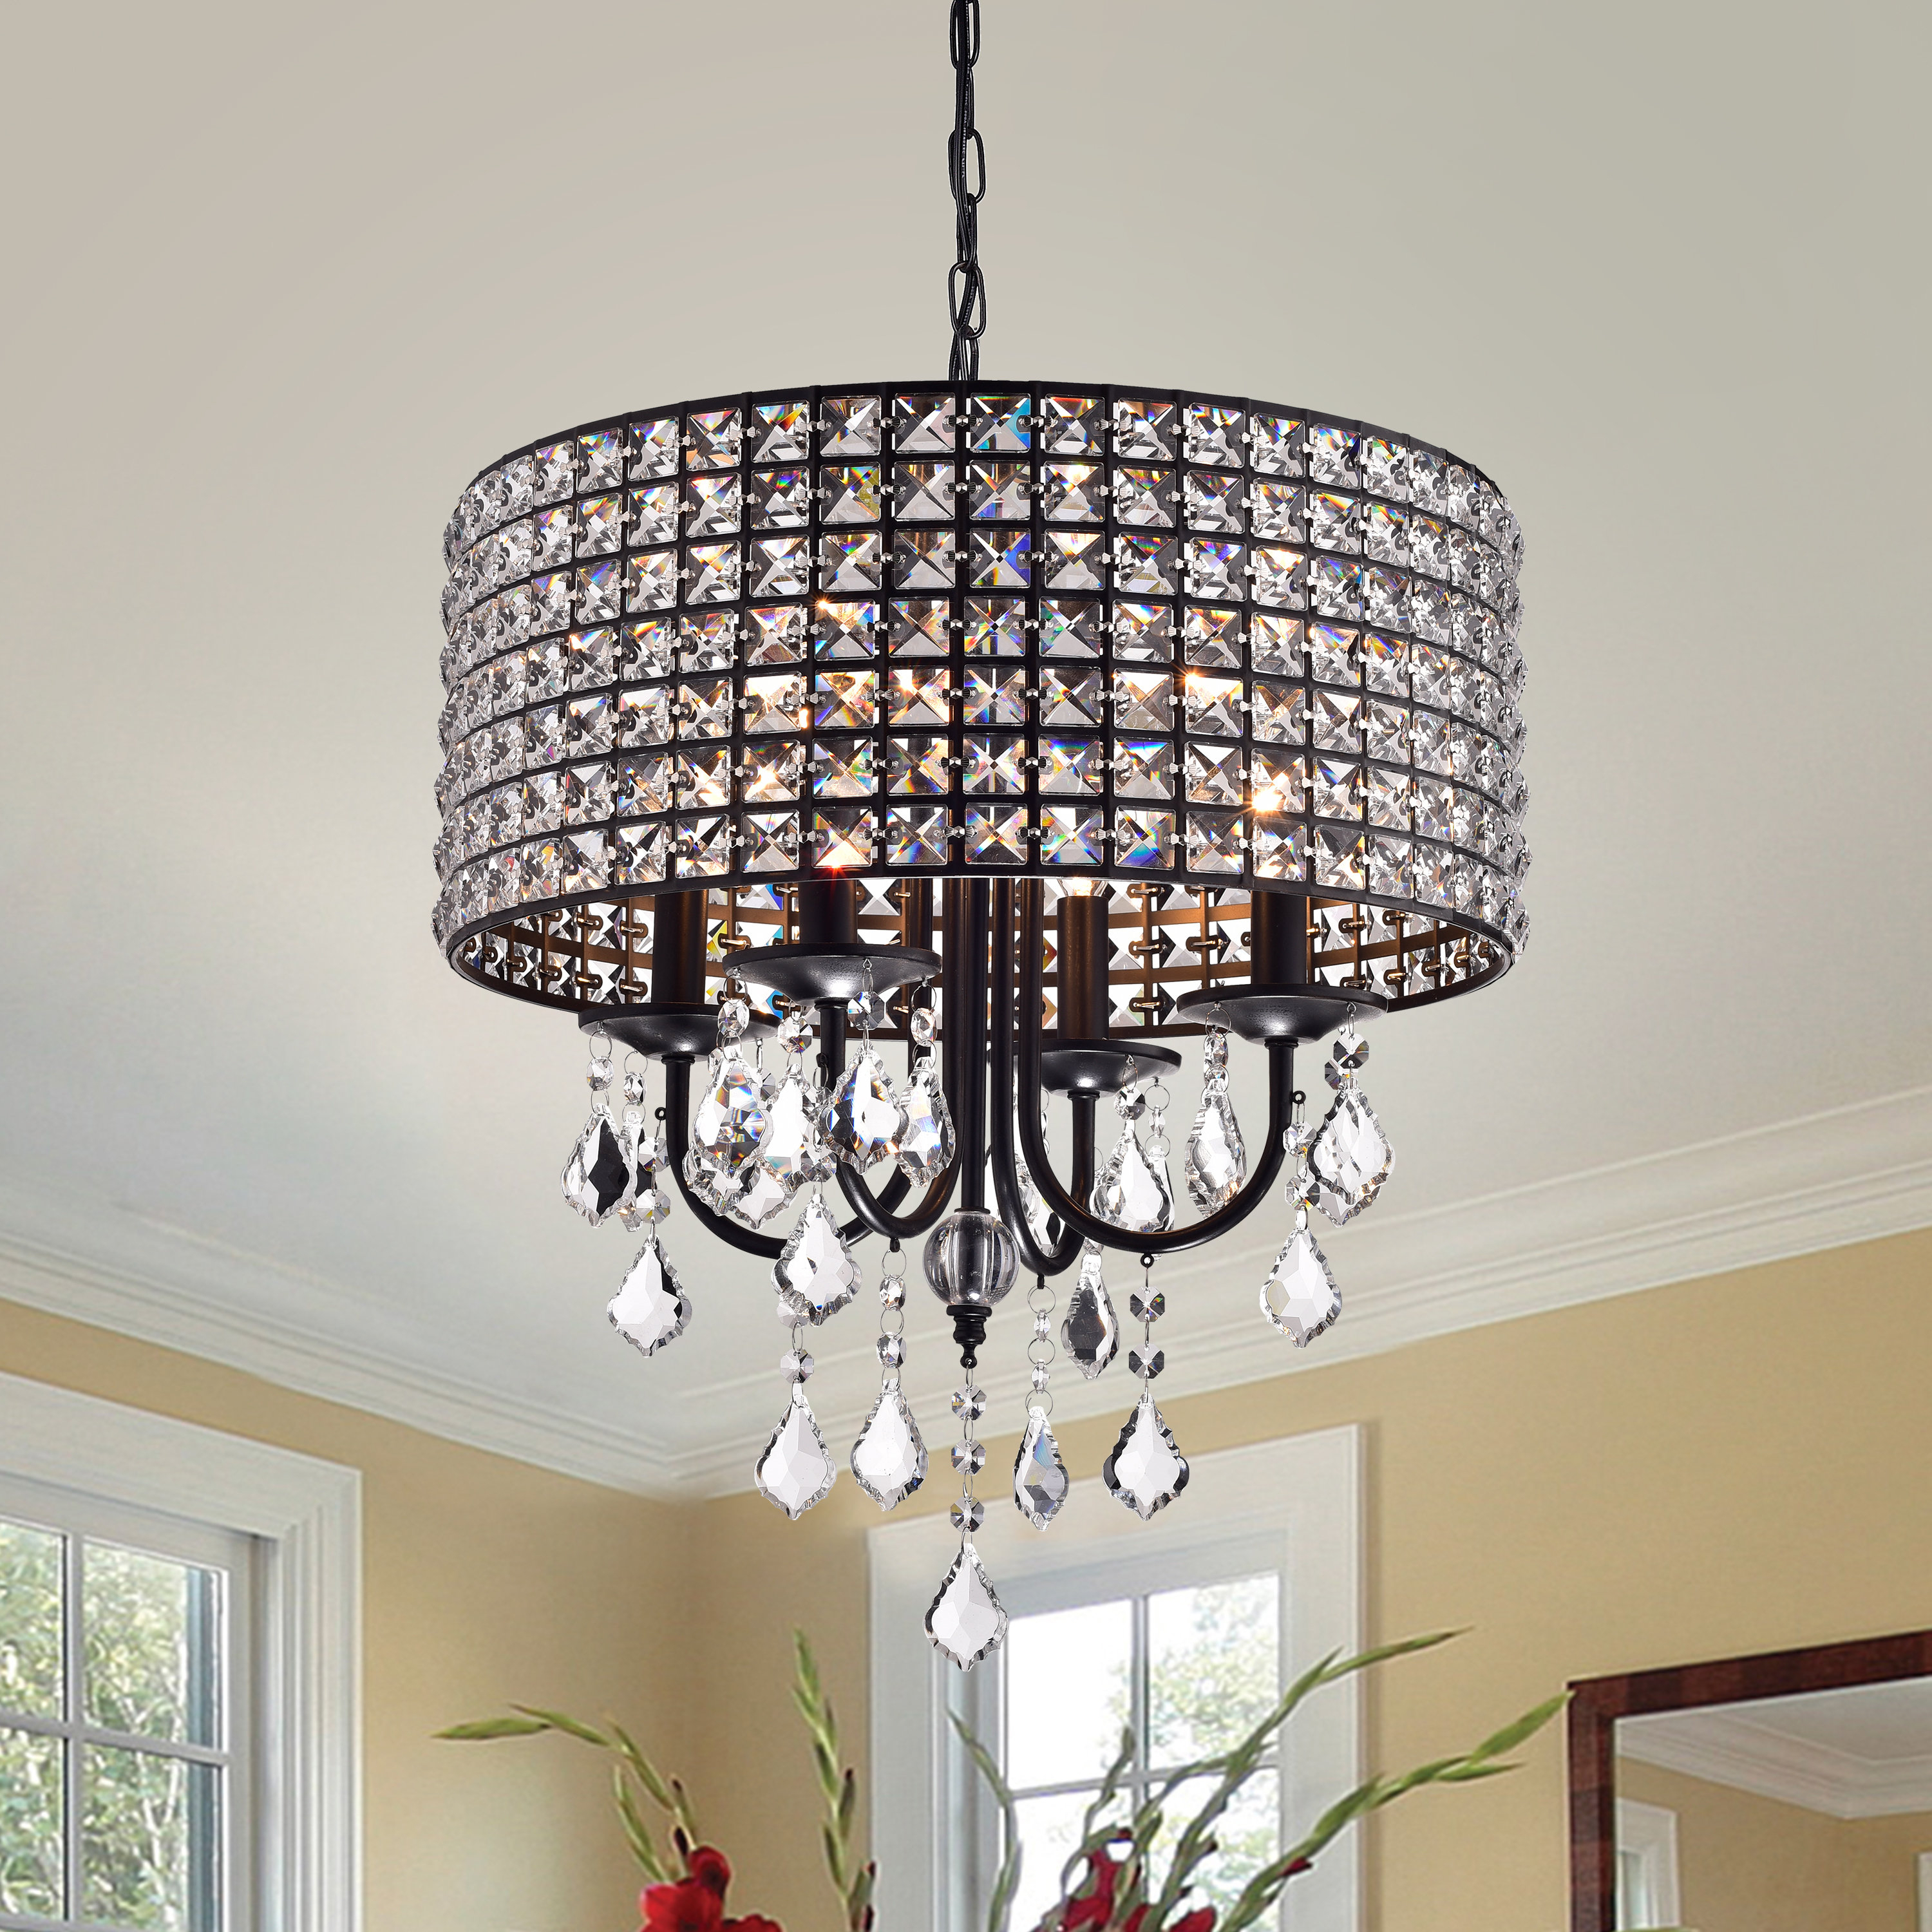 Well Liked Albano 4 Light Crystal Chandeliers Within Albano 4 Light Crystal Chandelier (Gallery 2 of 20)